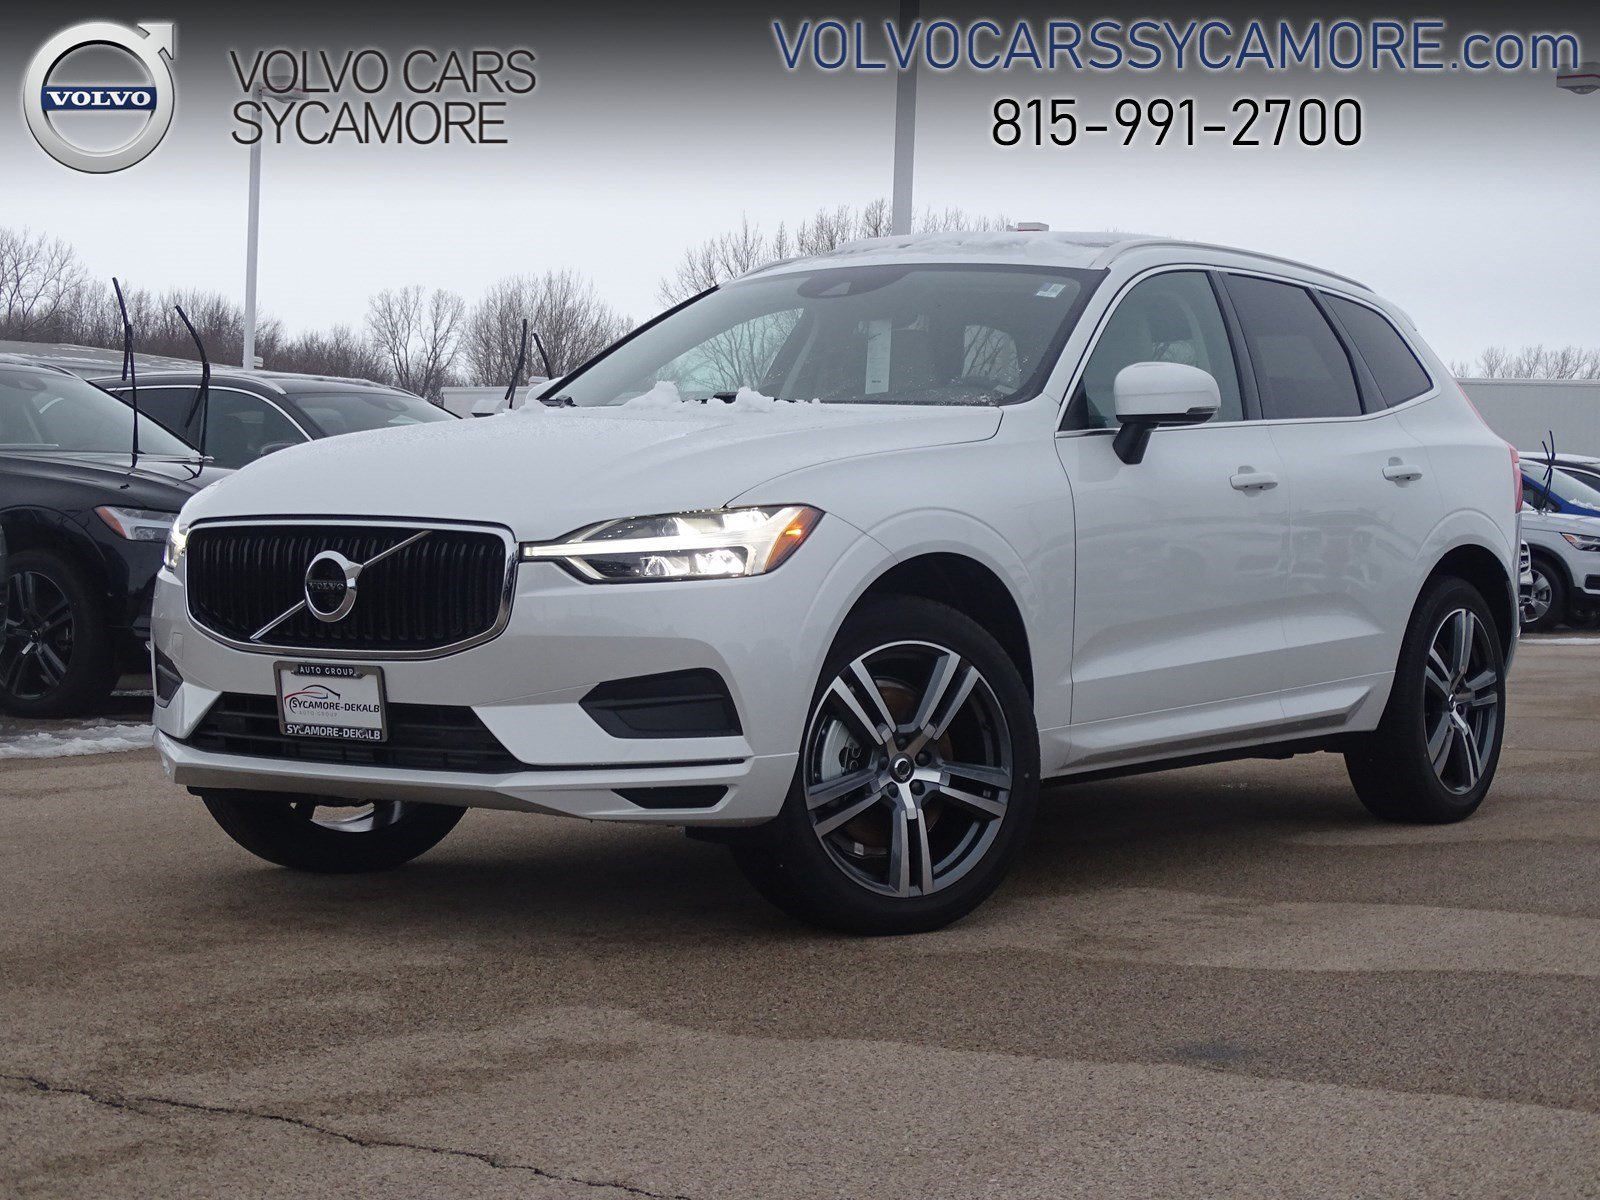 Volvo Xc60 2009 Unique New 2020 Volvo Xc60 Momentum Awd